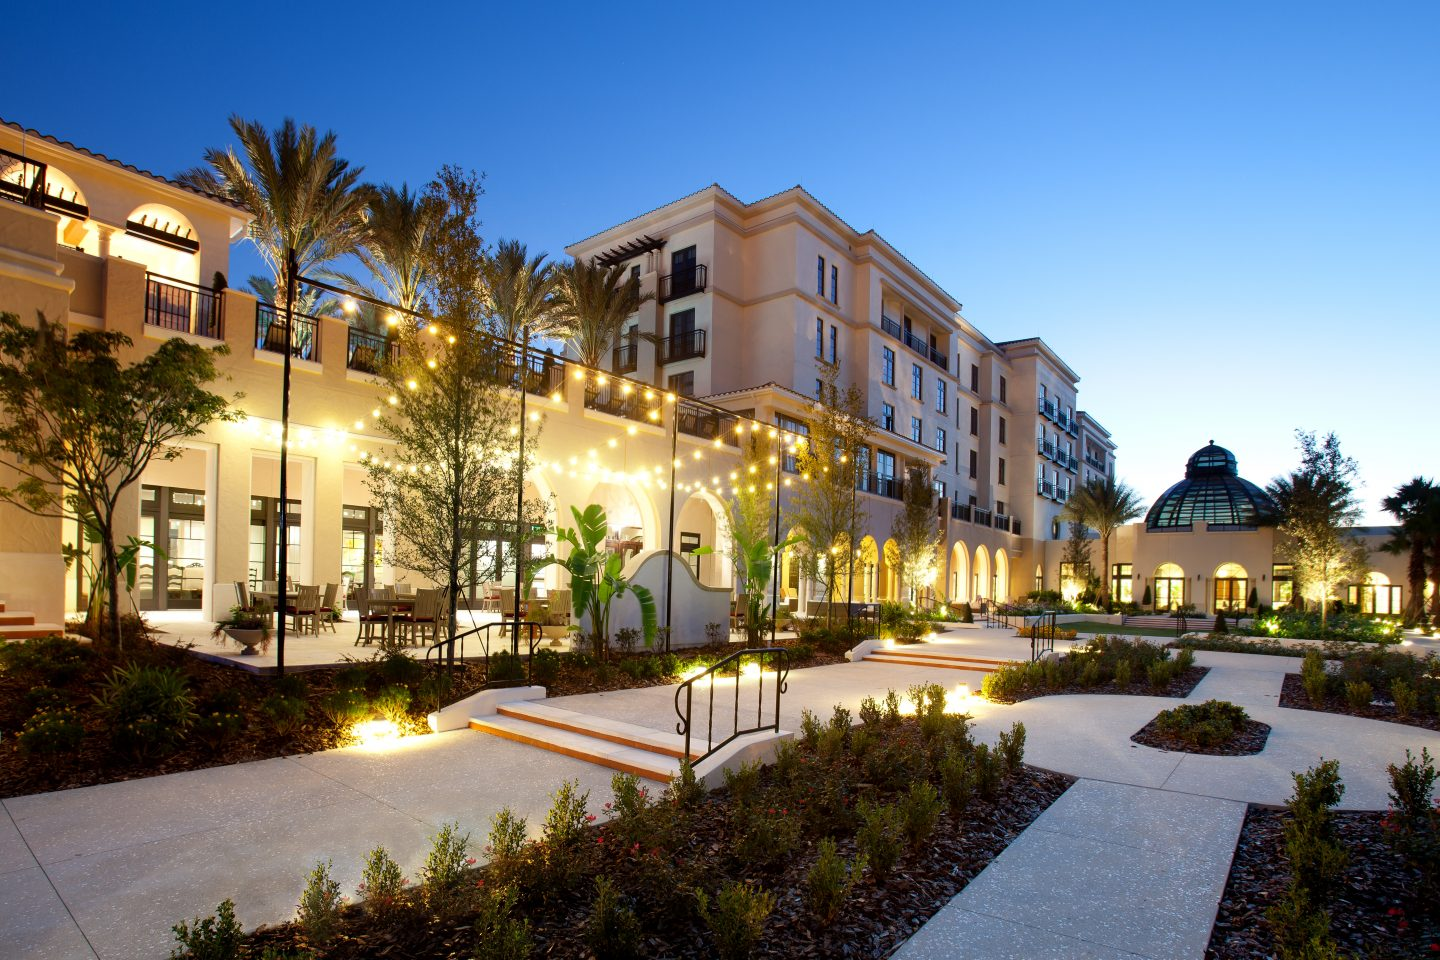 Where to stay in Orlando for Adults- The Alfond Inn exterior at night